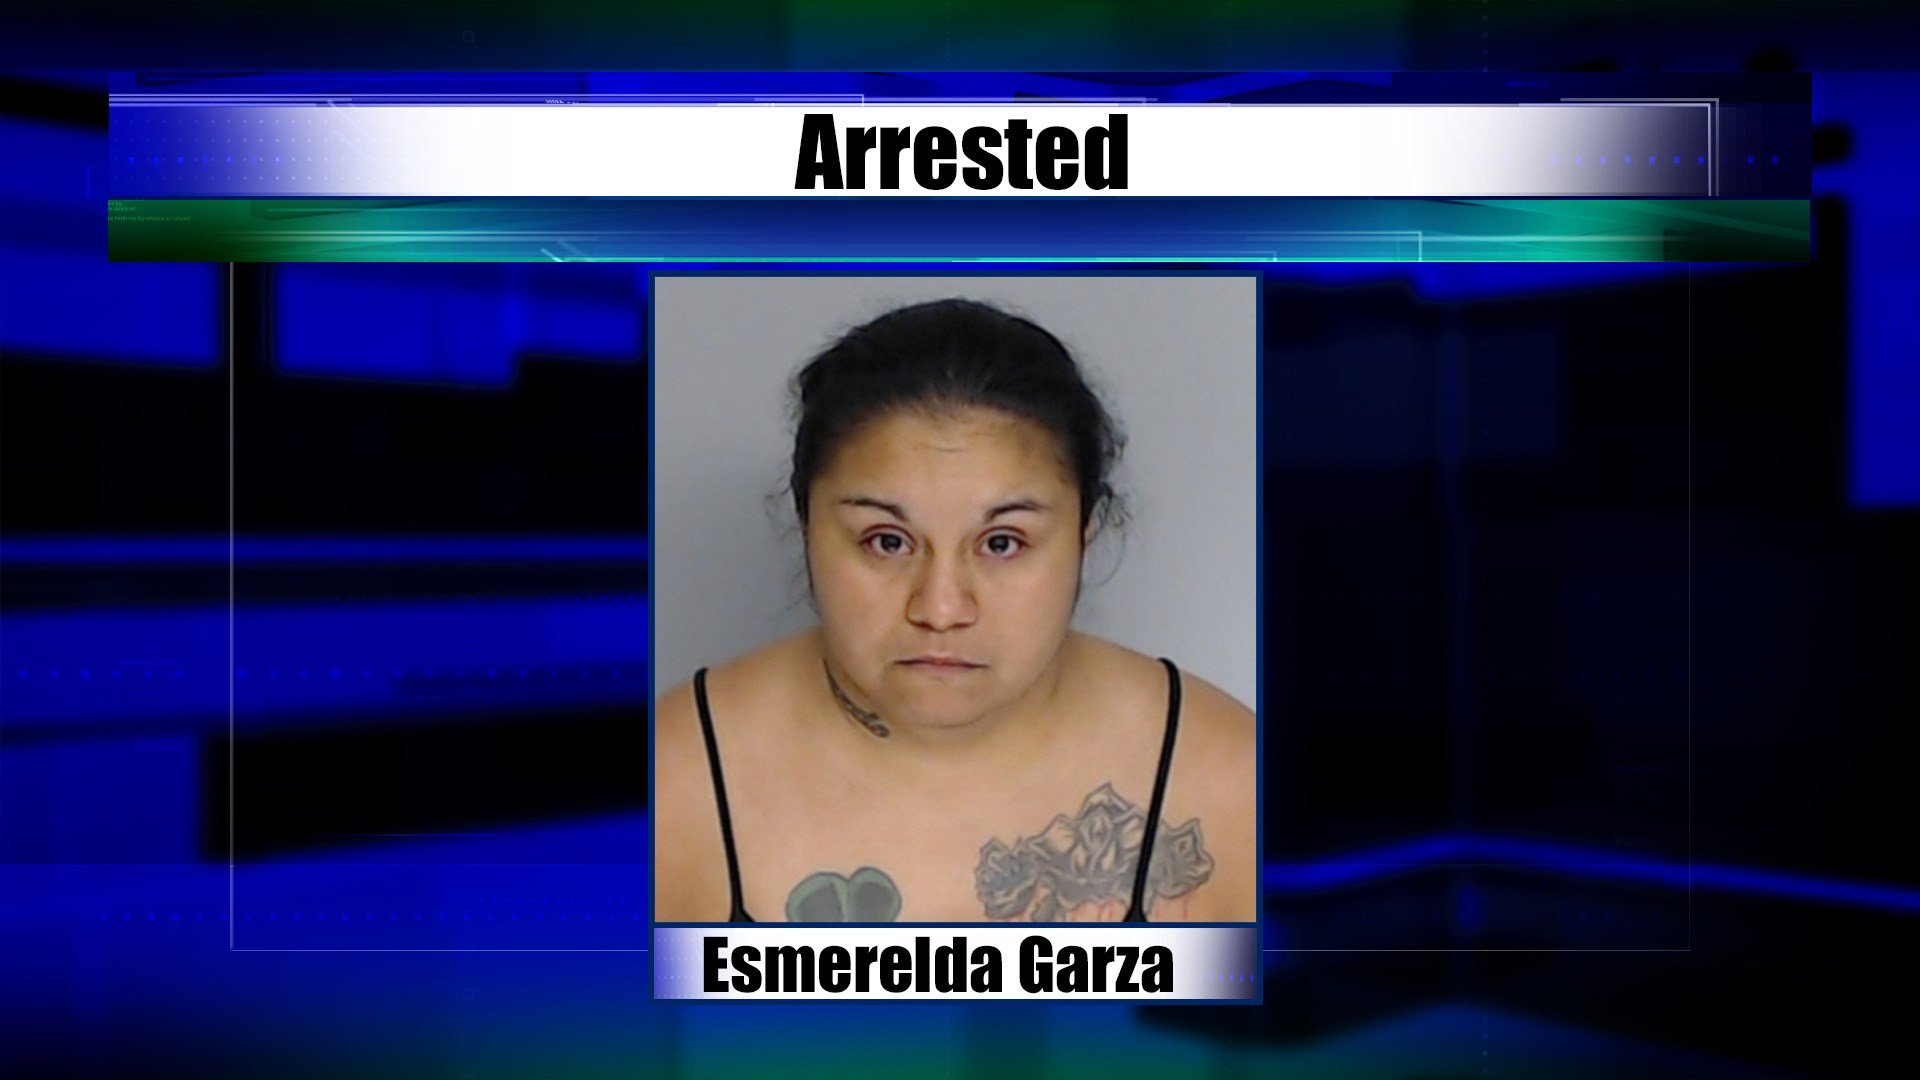 Texas mother sold child, tried to sell 2 more, authorities say